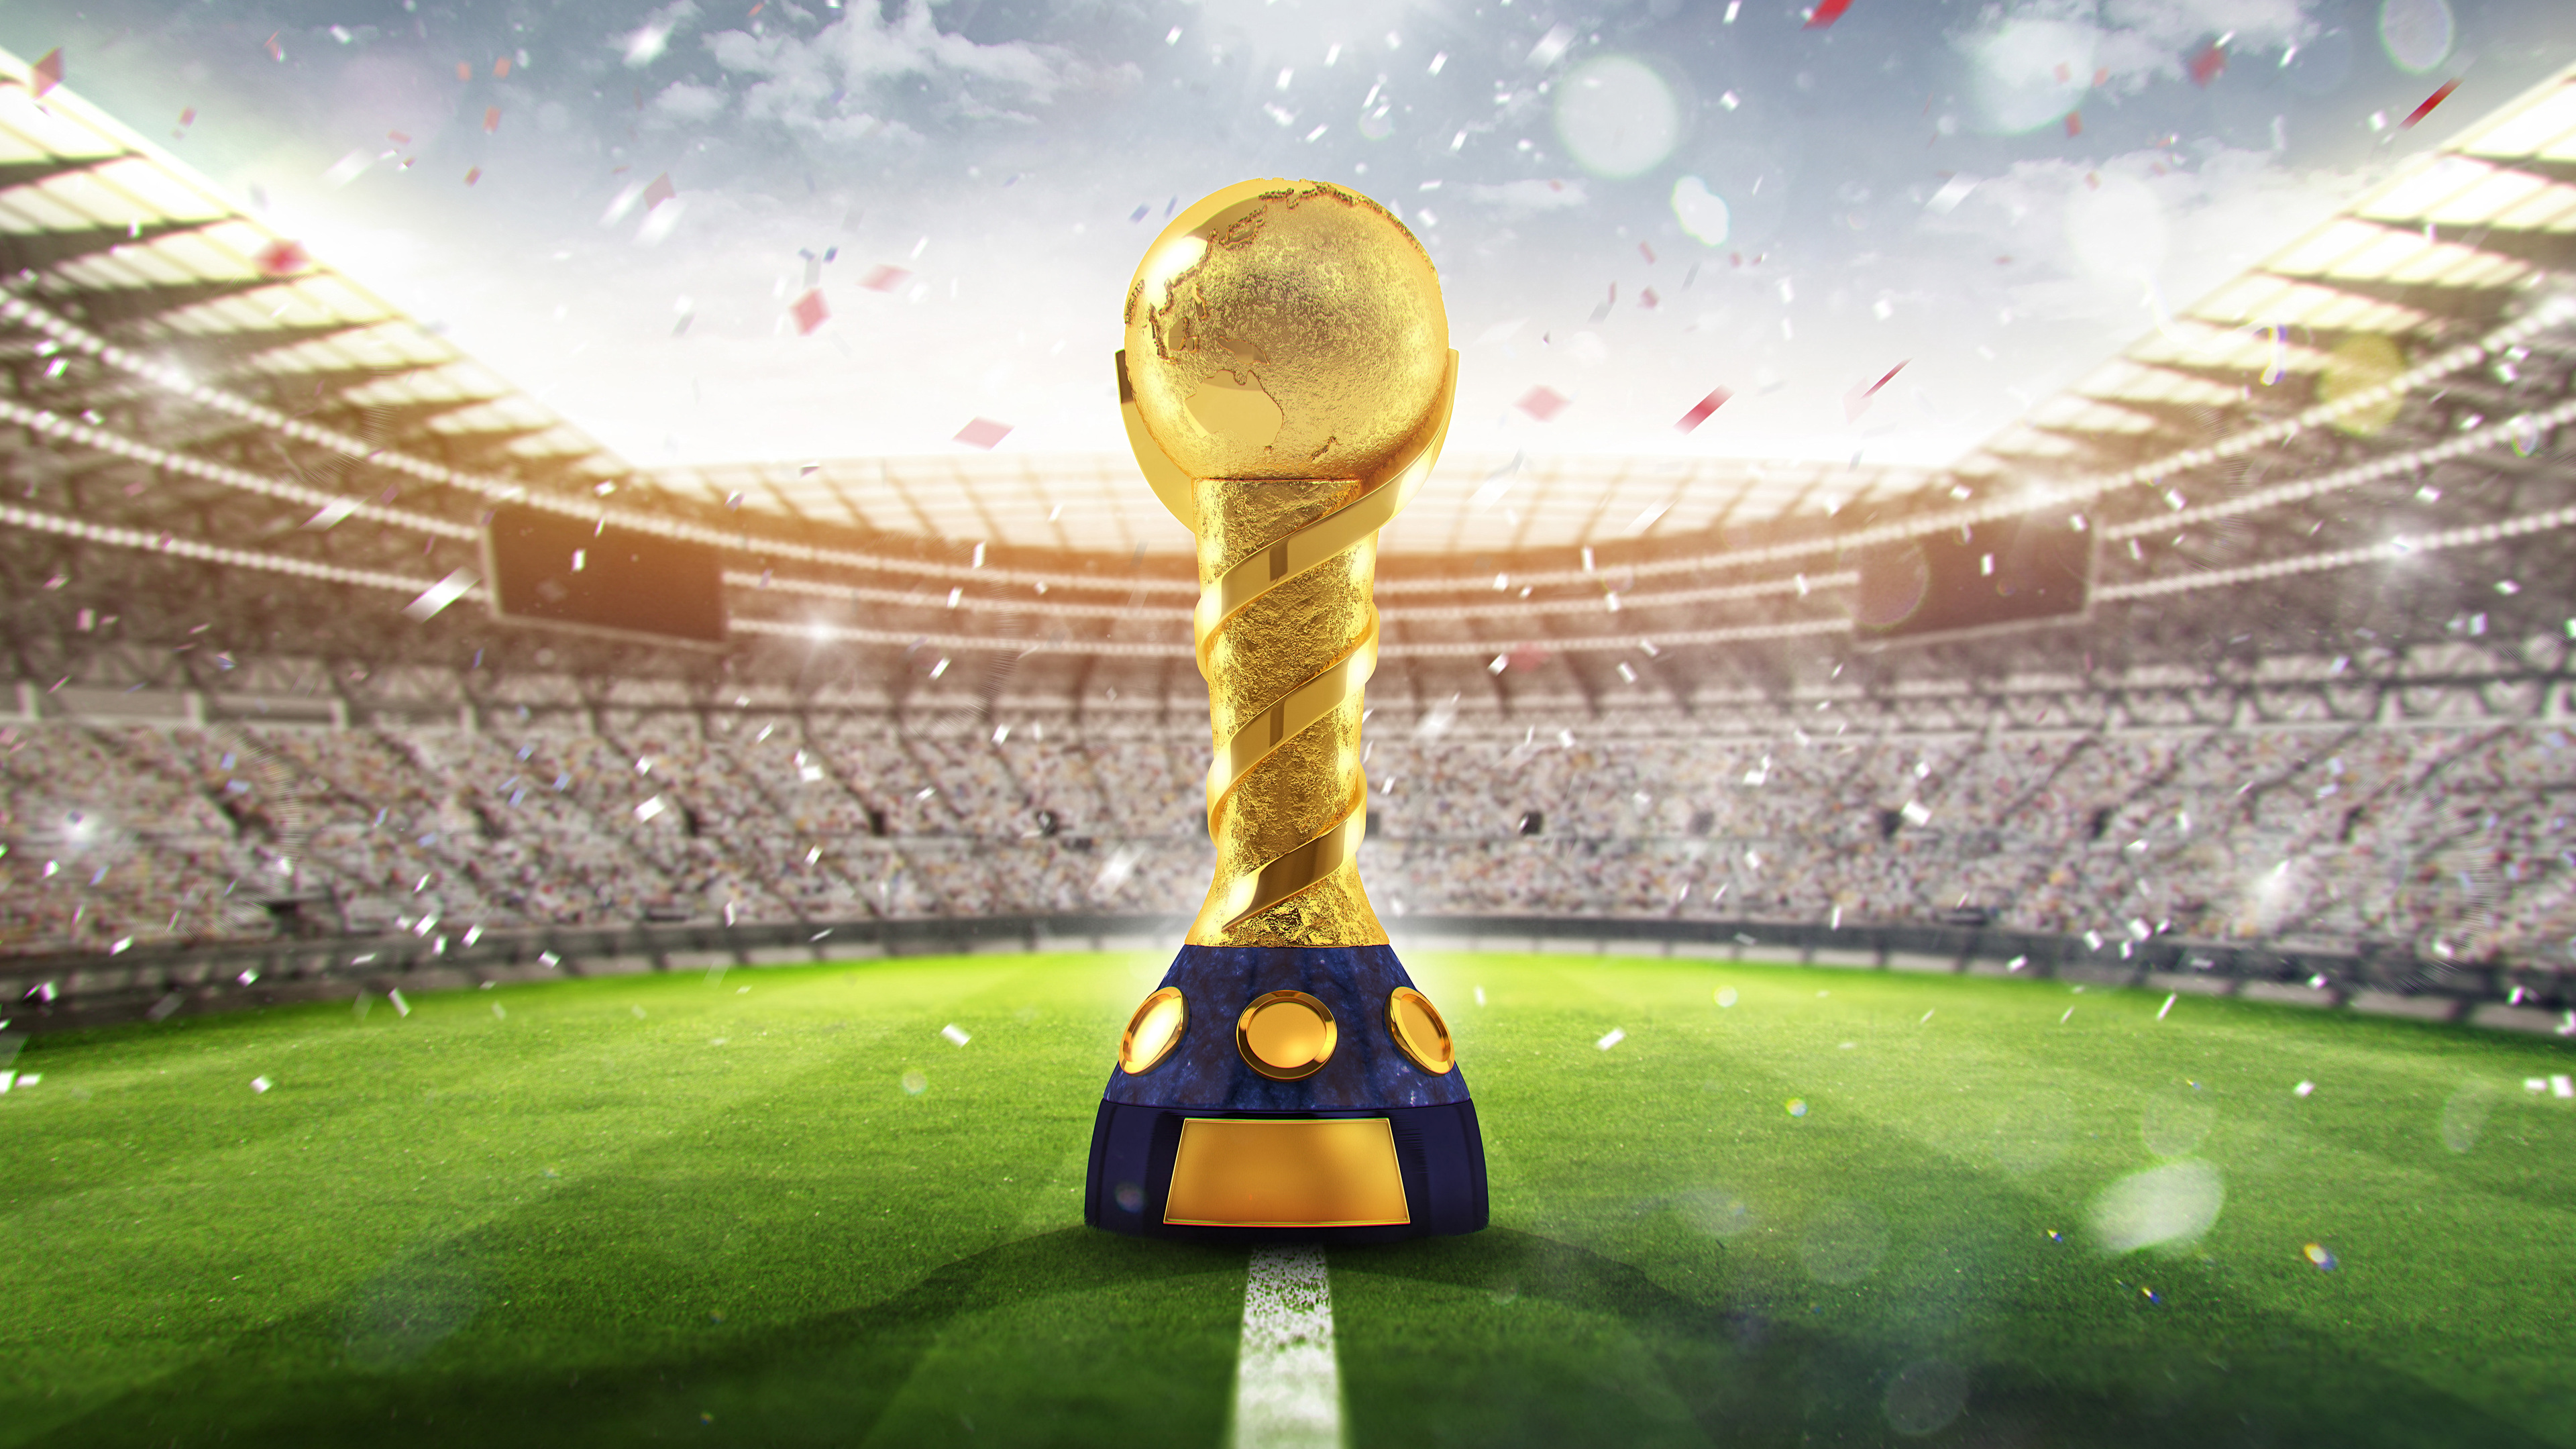 fifa world cup russia 2018 trophy 1538786902 - FIFA World Cup Russia 2018 Trophy - trophy wallpapers, hd-wallpapers, games wallpapers, football wallpapers, fifa world cup russia wallpapers, fifa wallpapers, 8k wallpapers, 5k wallpapers, 4k-wallpapers, 2018 games wallpapers